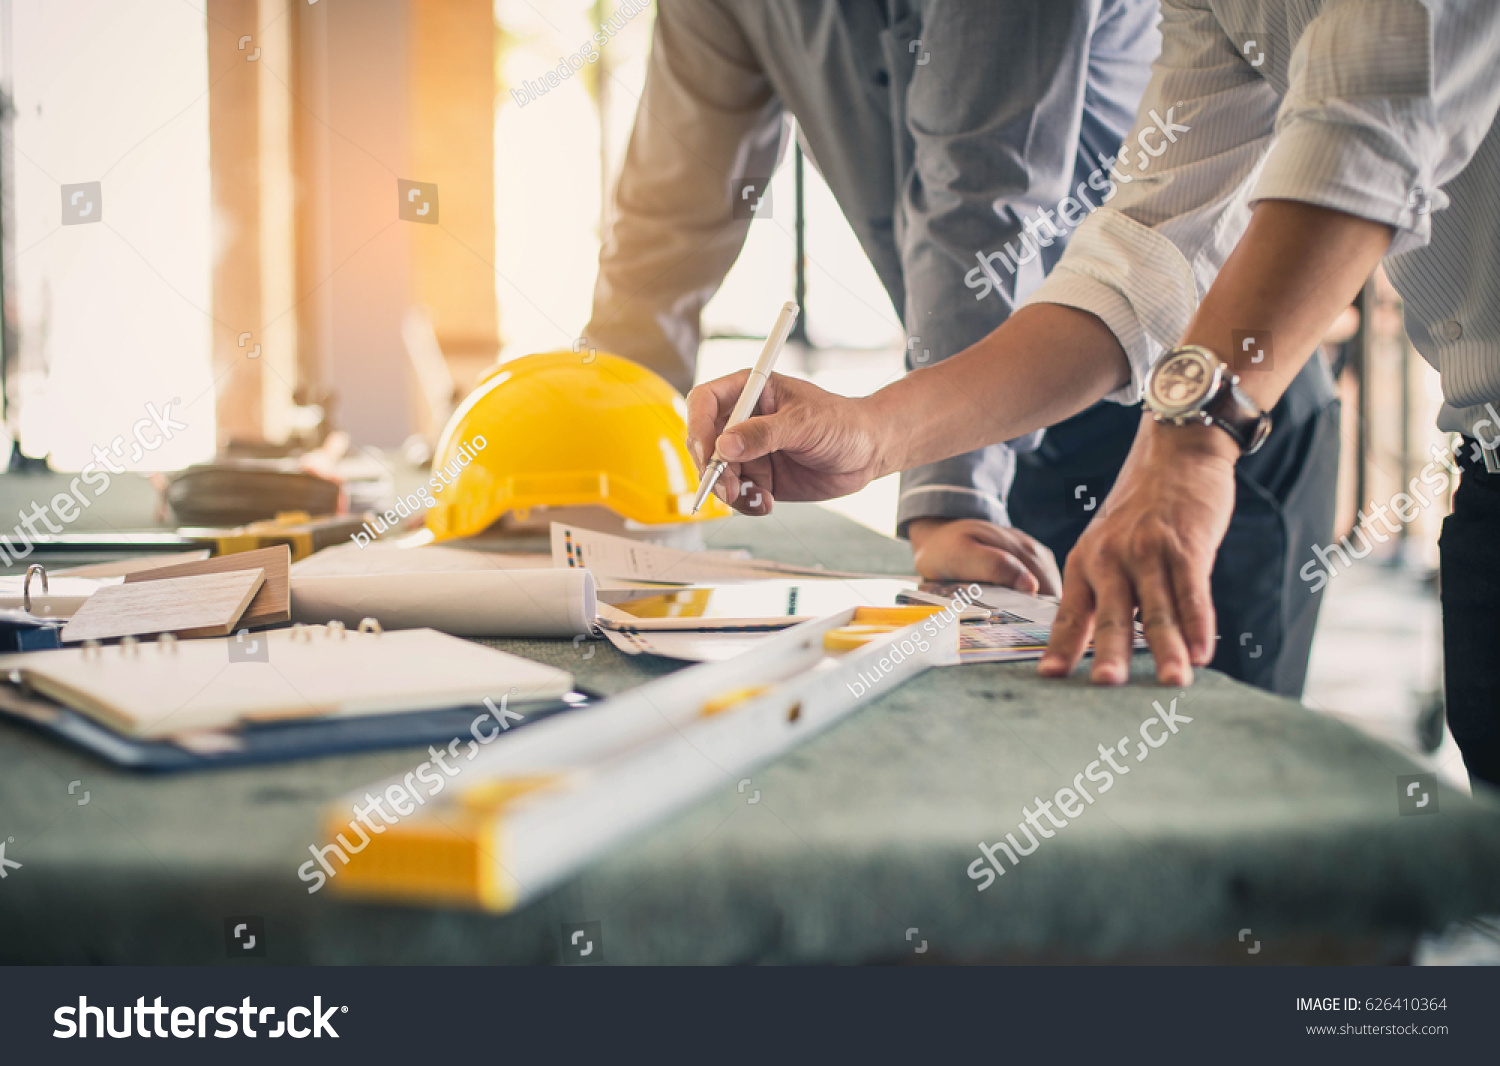 Two business man construction site engineer. Engineering objects on workplace with partners interacting on background #626410364